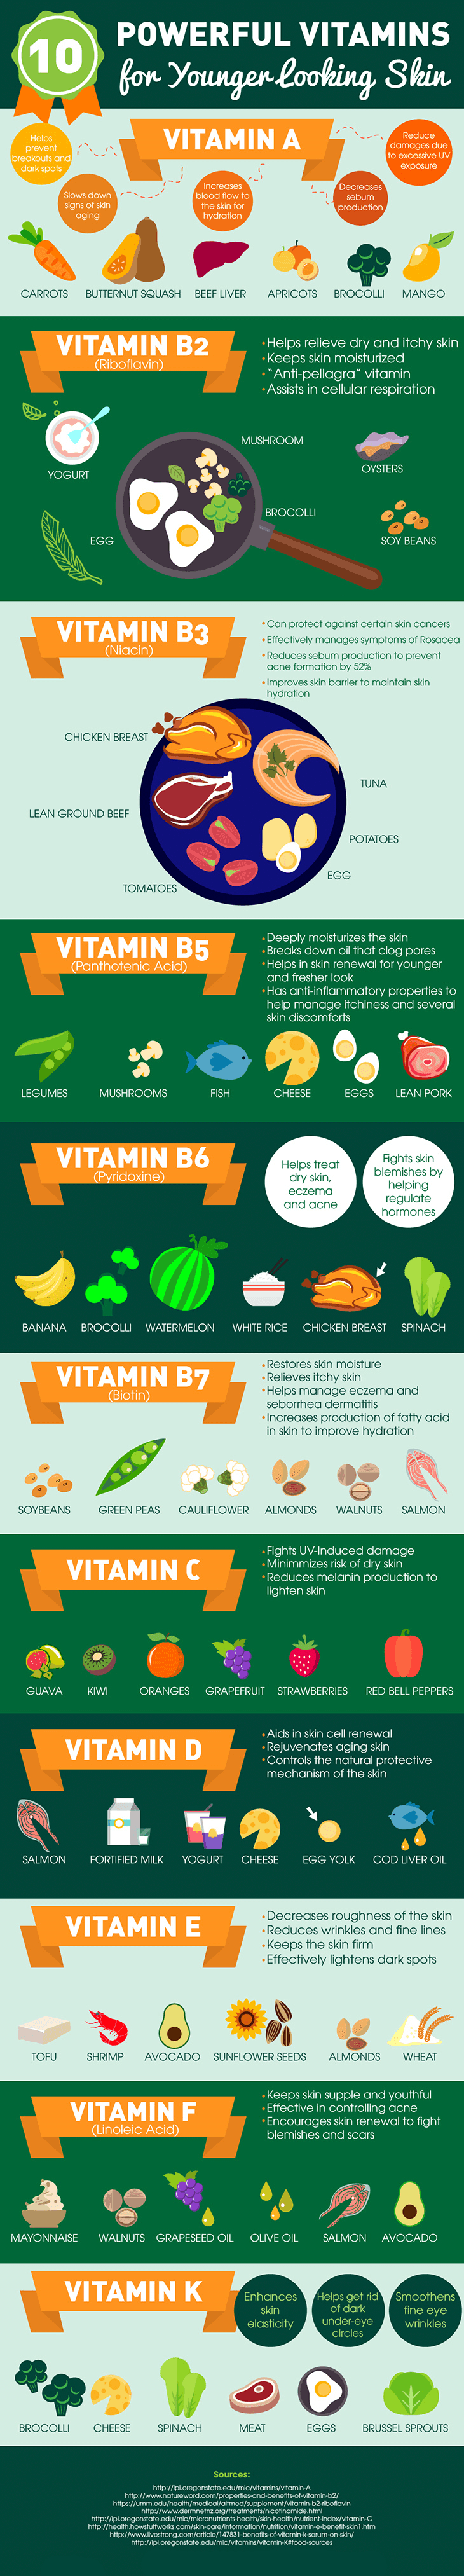 10-Powerful-Vitamins-for-Younger-Looking-Skin-1